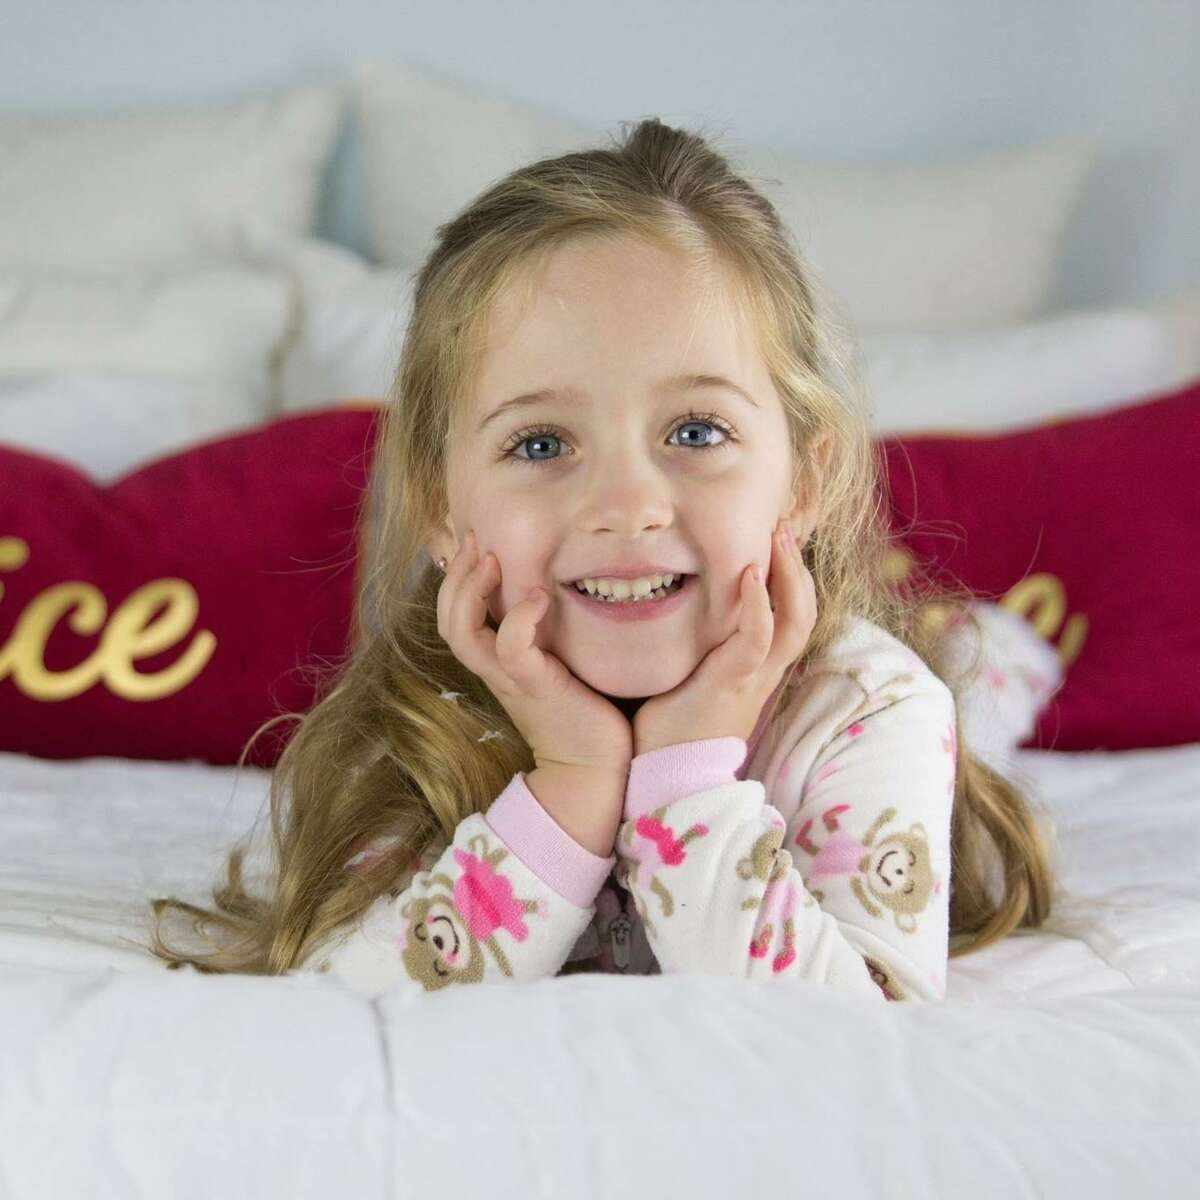 Emma Splan, 6, died of flu complications early Sunday morning.